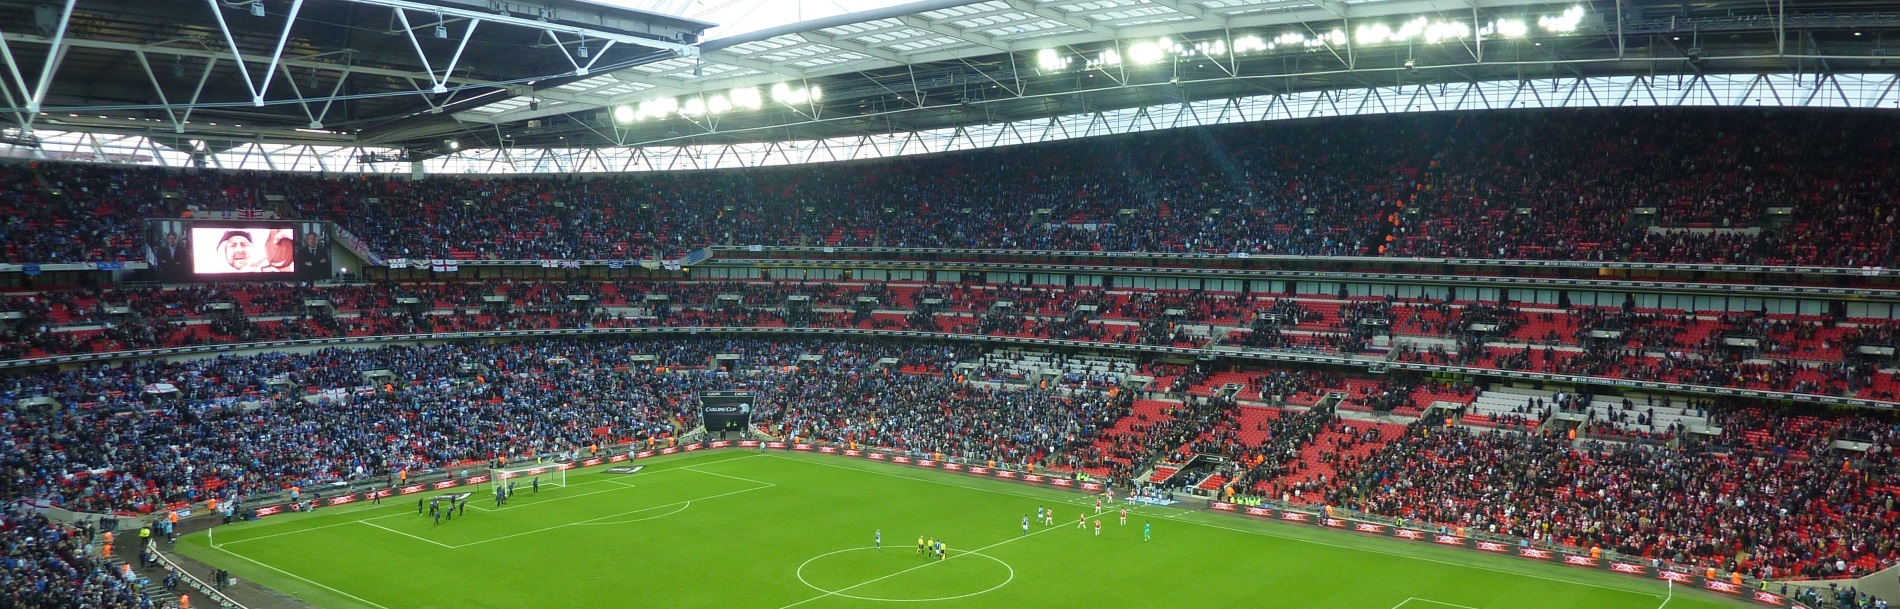 Wembley_Stadium_header